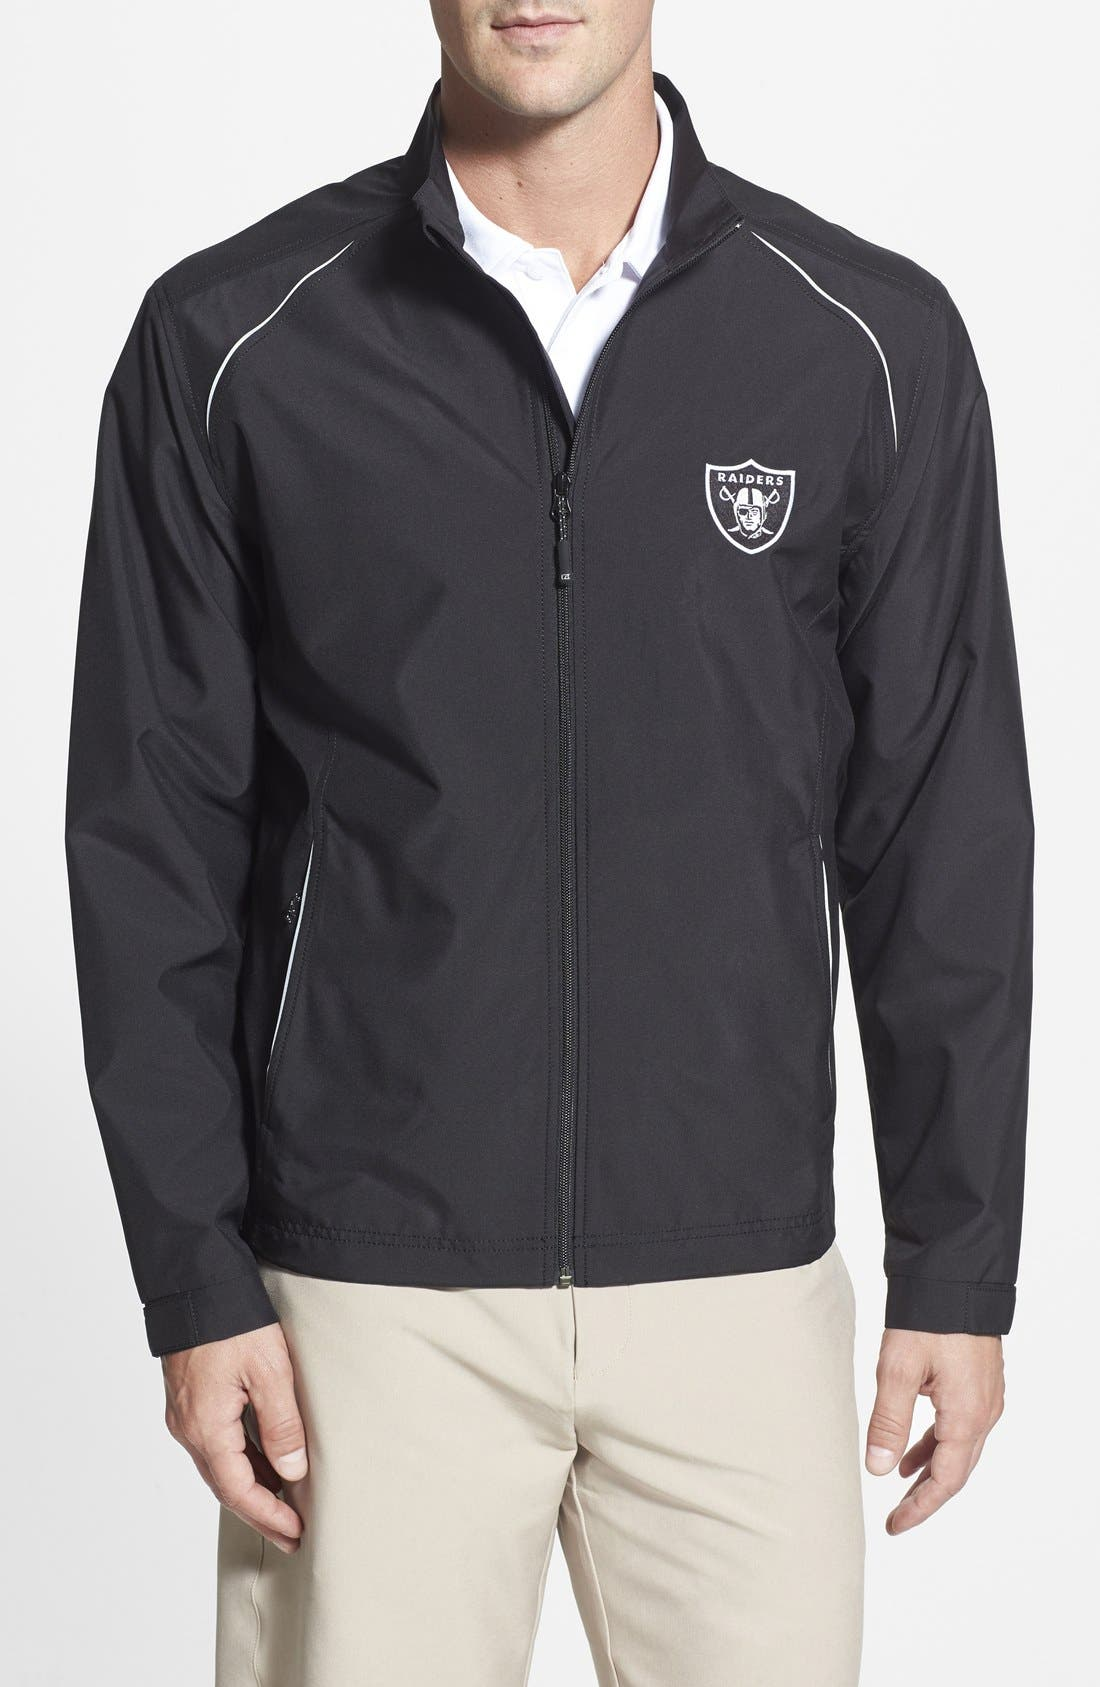 Cutter & Buck 'Oakland Raiders - Beacon' WeatherTec Wind & Water Resistant Jacket (Big & Tall)